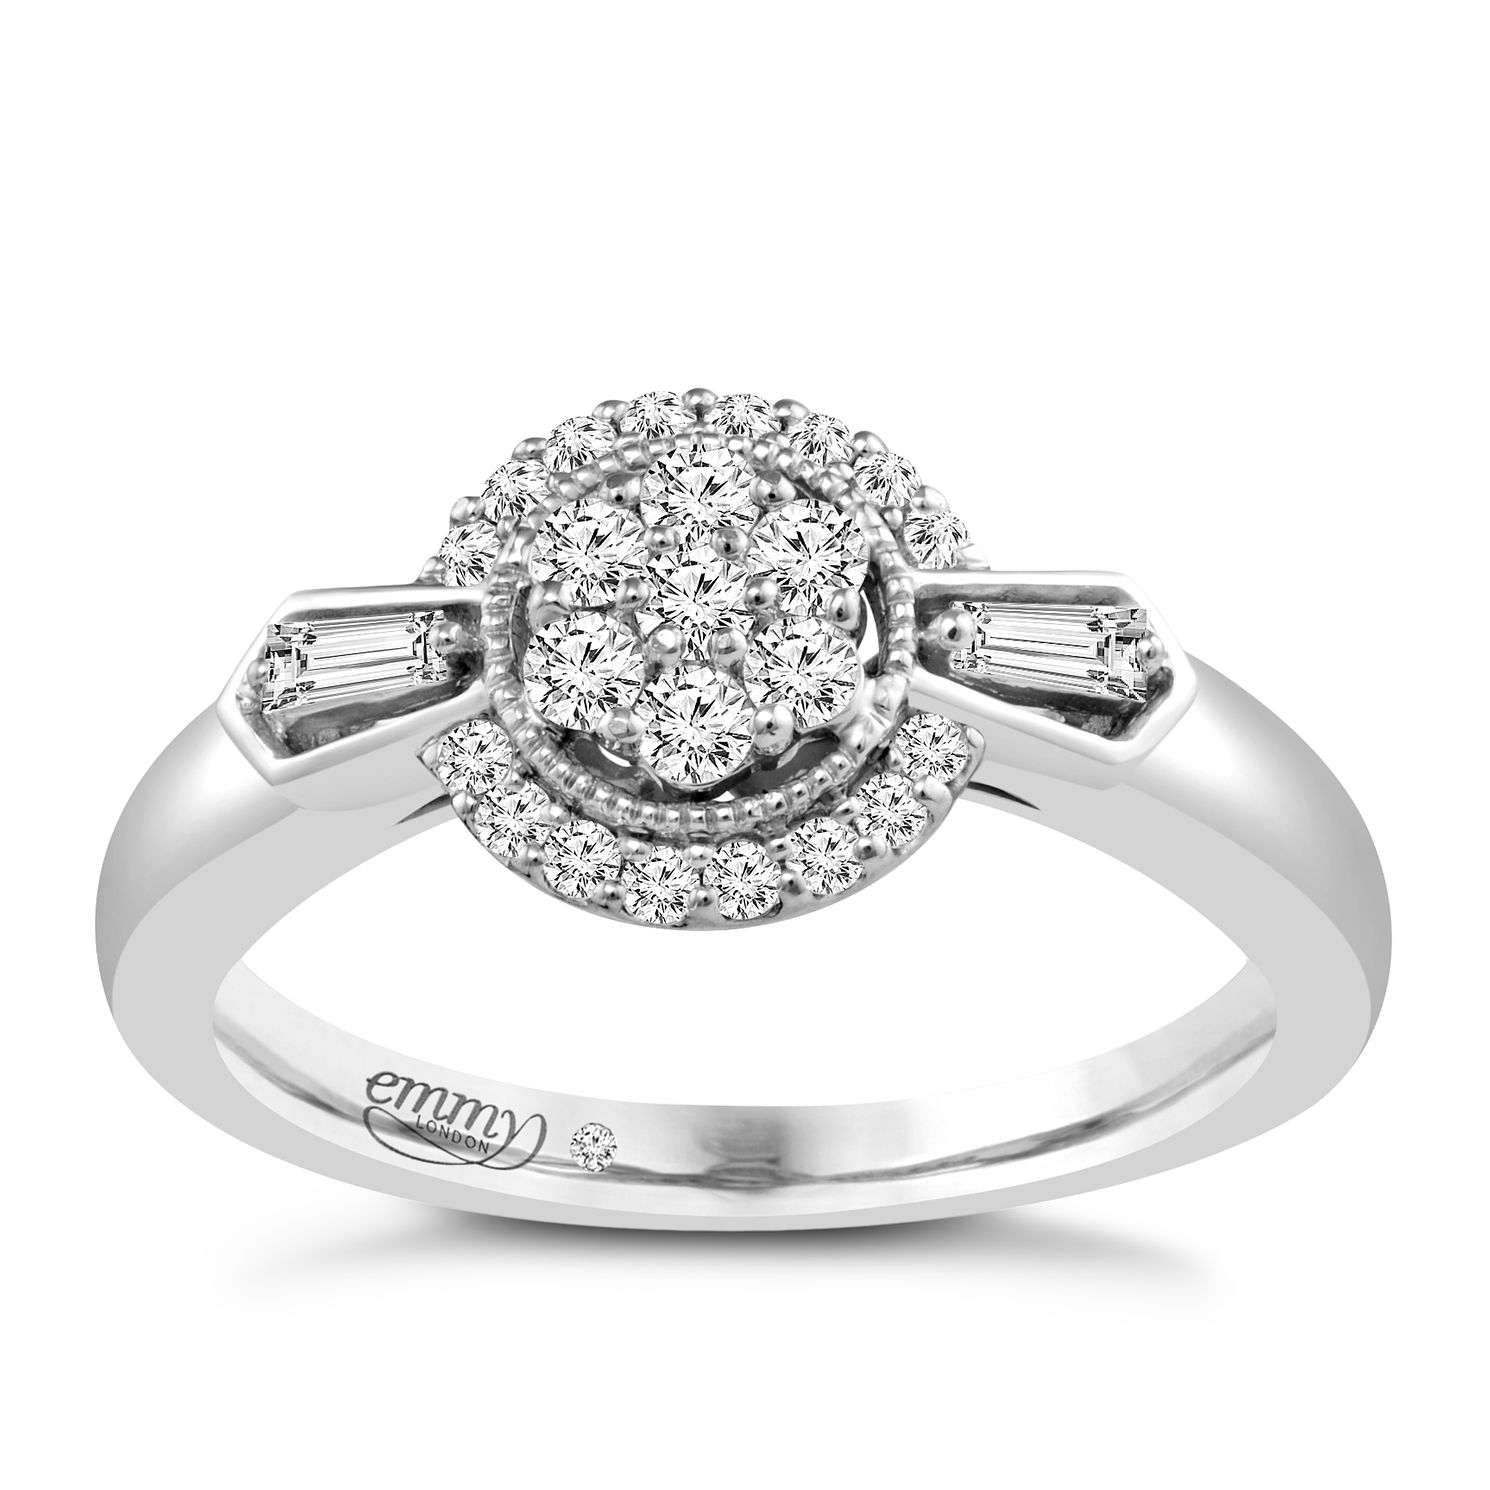 Emmy London Palladium 0.33ct Total Diamond Ring - Product number 4536703